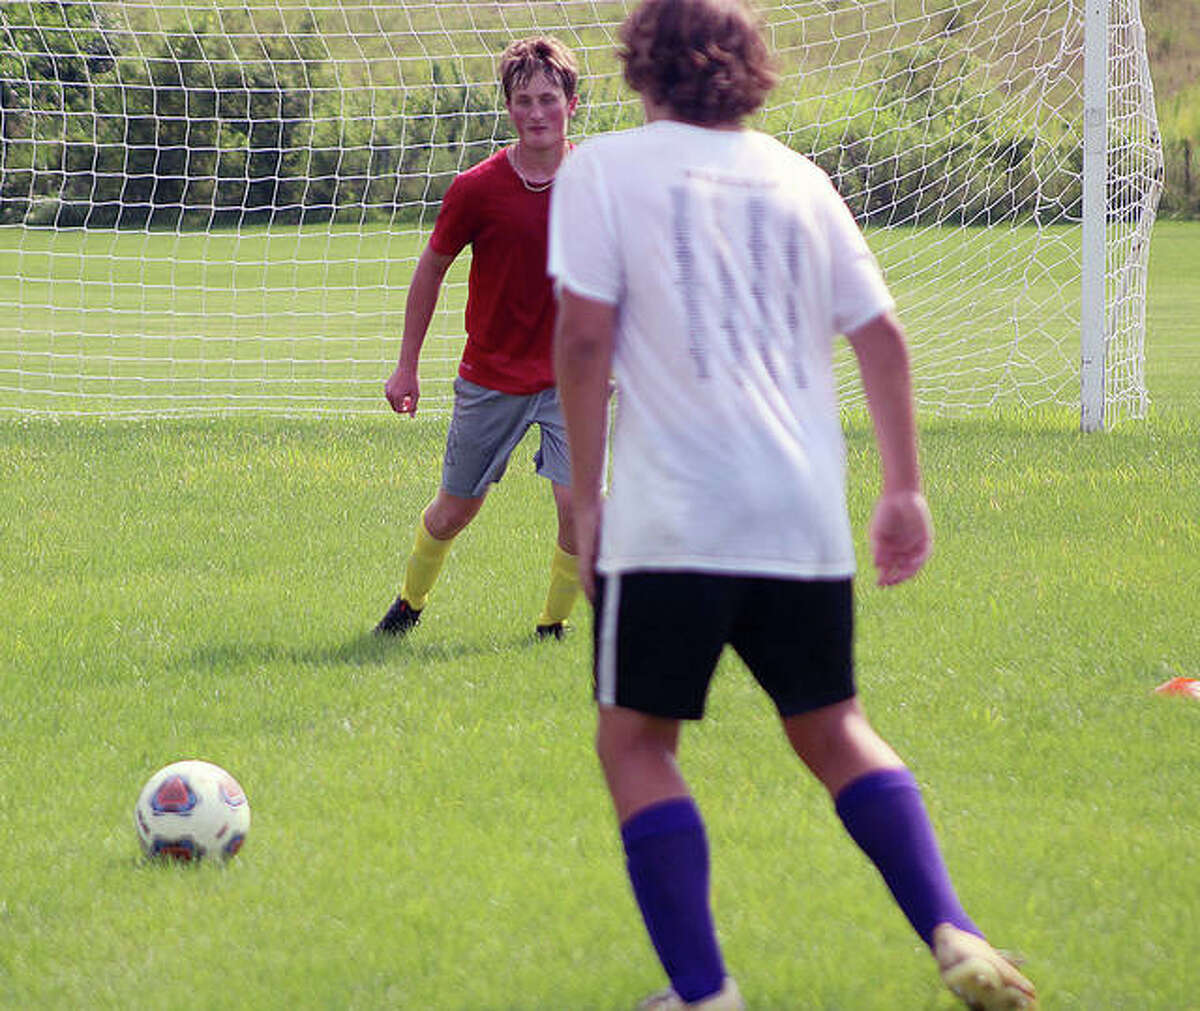 Civic Memorial's Brock Barrows (in red) waits for a pass from teammate Dylan Hoffman during a practice session at the Bethalto Sports Complex.